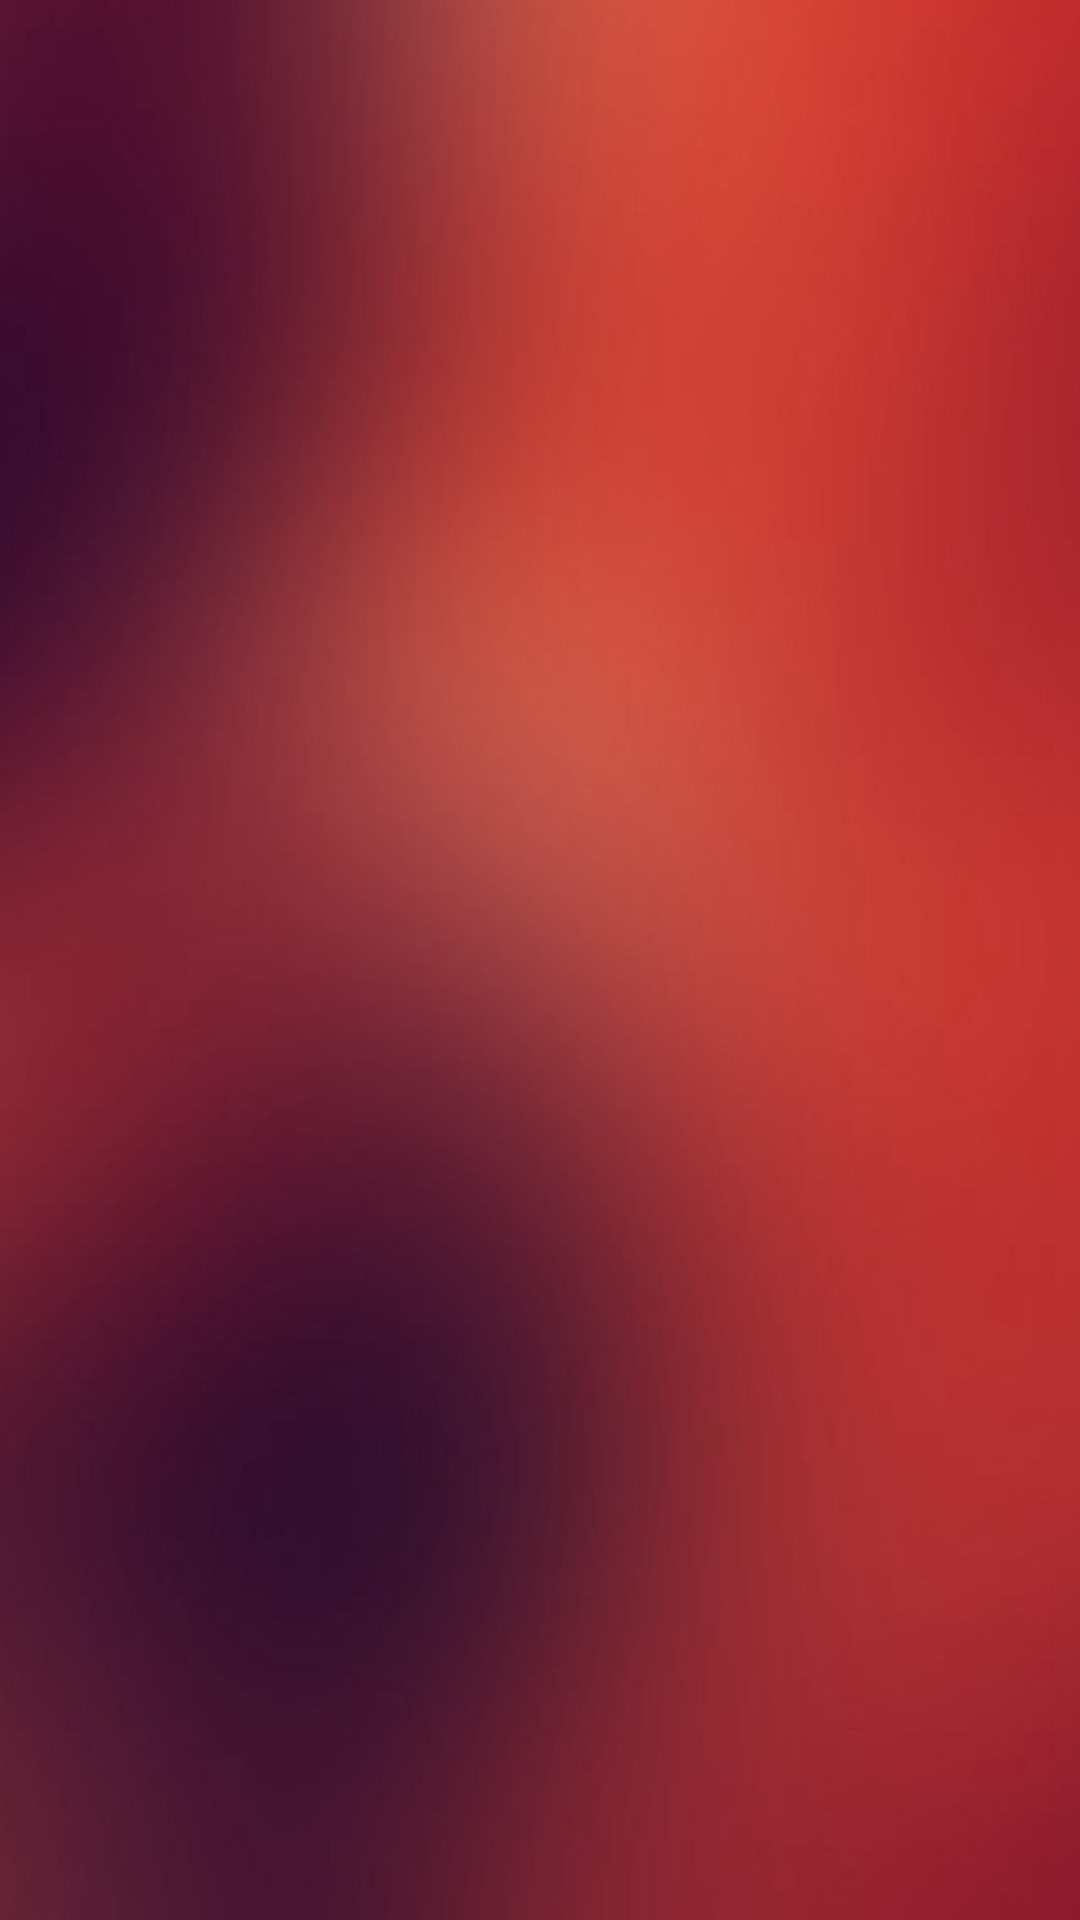 1080x1920 Orange Warm Hot Gradation Blur #iPhone #6 #plus #wallpaper